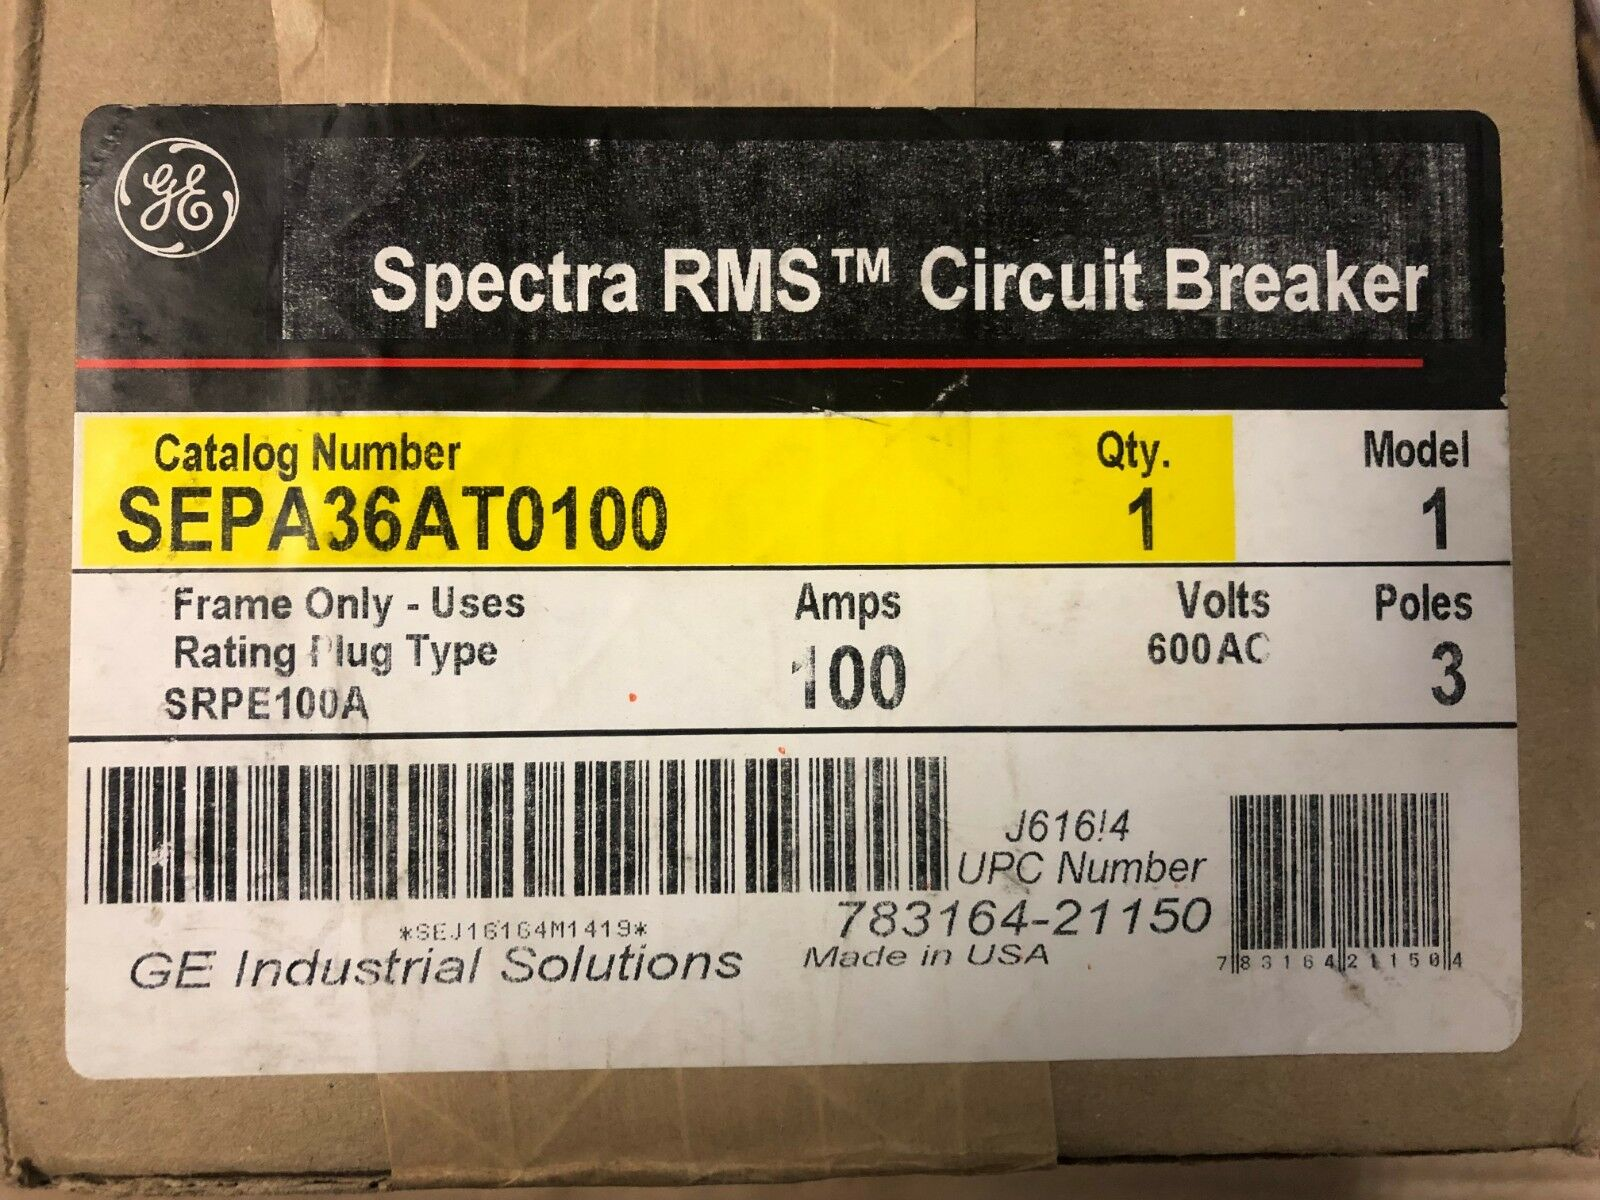 General Electric Sepa36at0100 Spectra Rms Circuit Breaker Ebay Arc Fault Interrupter Afci Ge Industrial Solutions Norton Secured Powered By Verisign